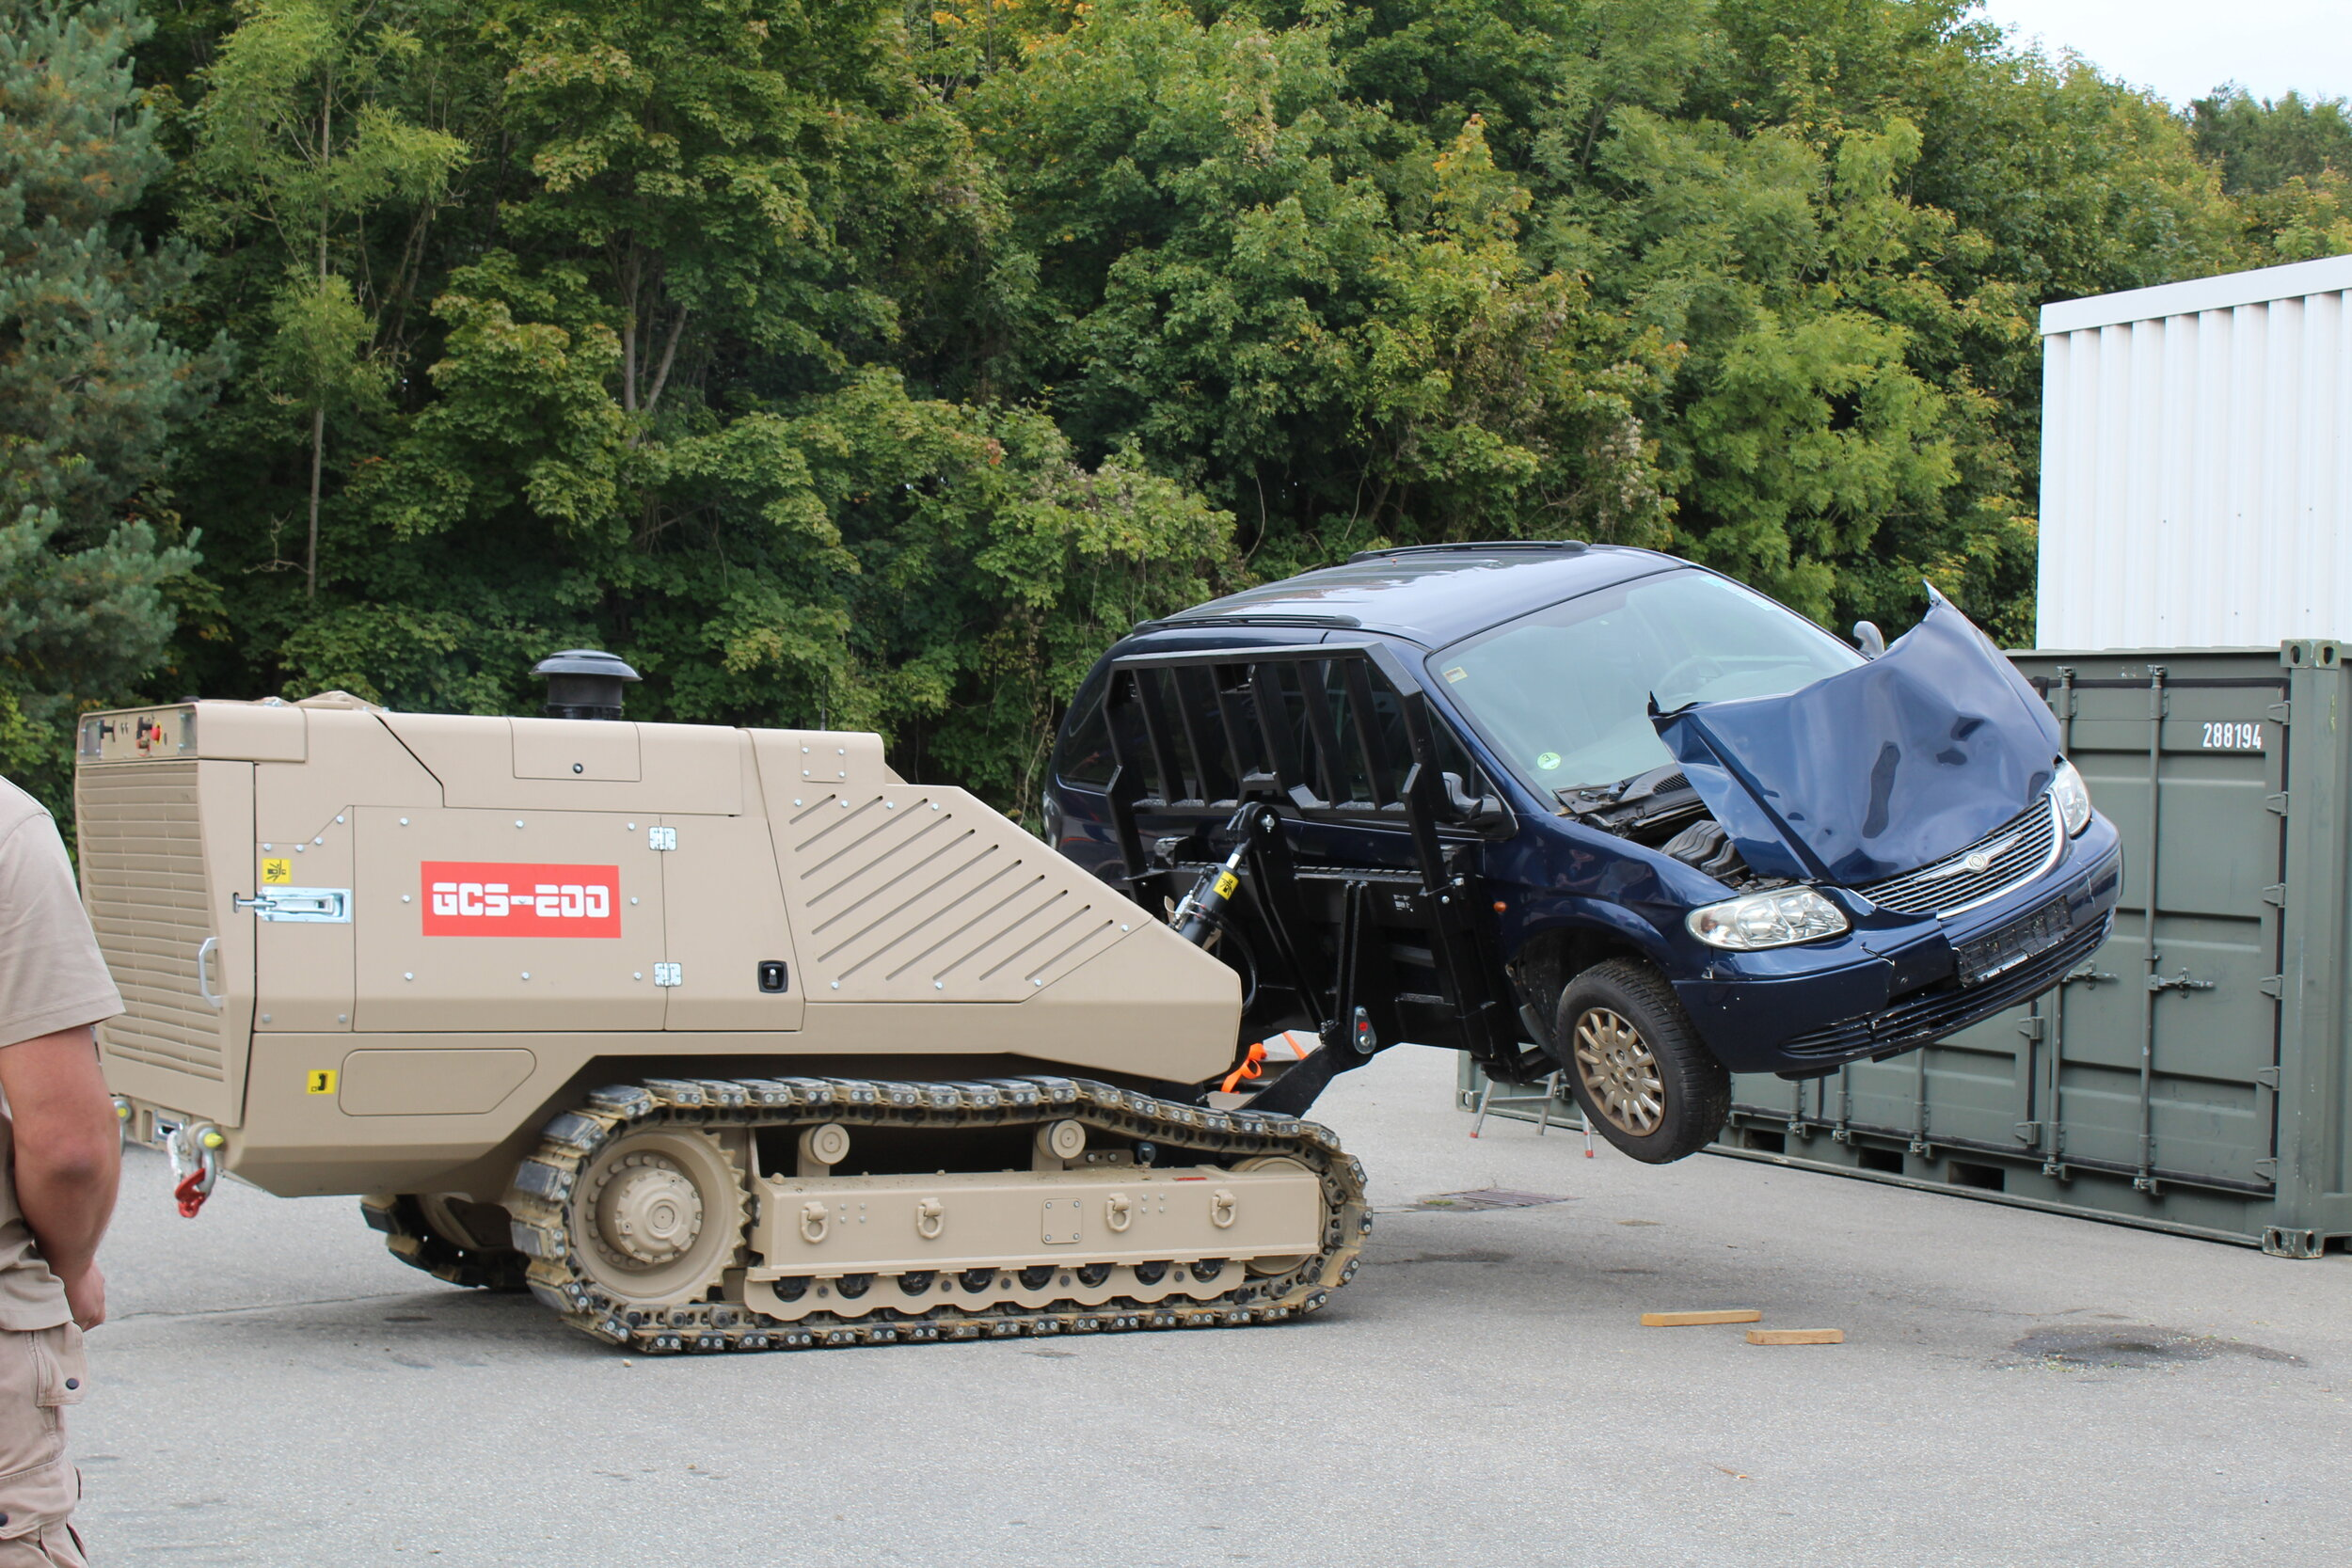 The GCS-200 removes a car in an IED scenario with the pallet fork